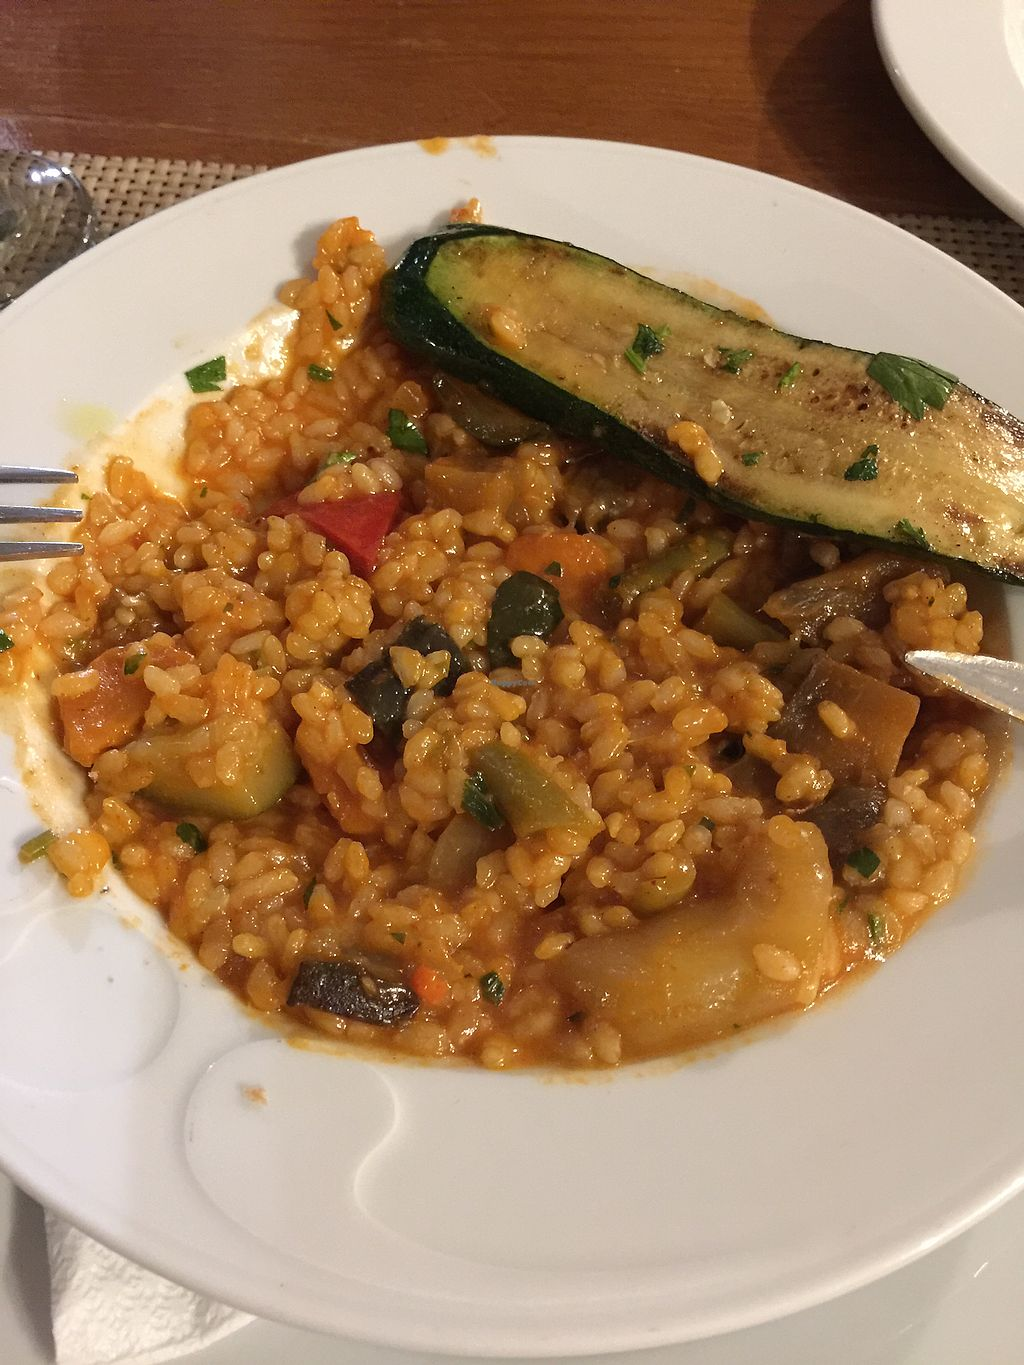 """Photo of Konoba Bonaca  by <a href=""""/members/profile/Vickytoria"""">Vickytoria</a> <br/>Vegetable risotto (and a piece of zucchini from the grilled veggie plate)  <br/> October 17, 2017  - <a href='/contact/abuse/image/81756/316102'>Report</a>"""